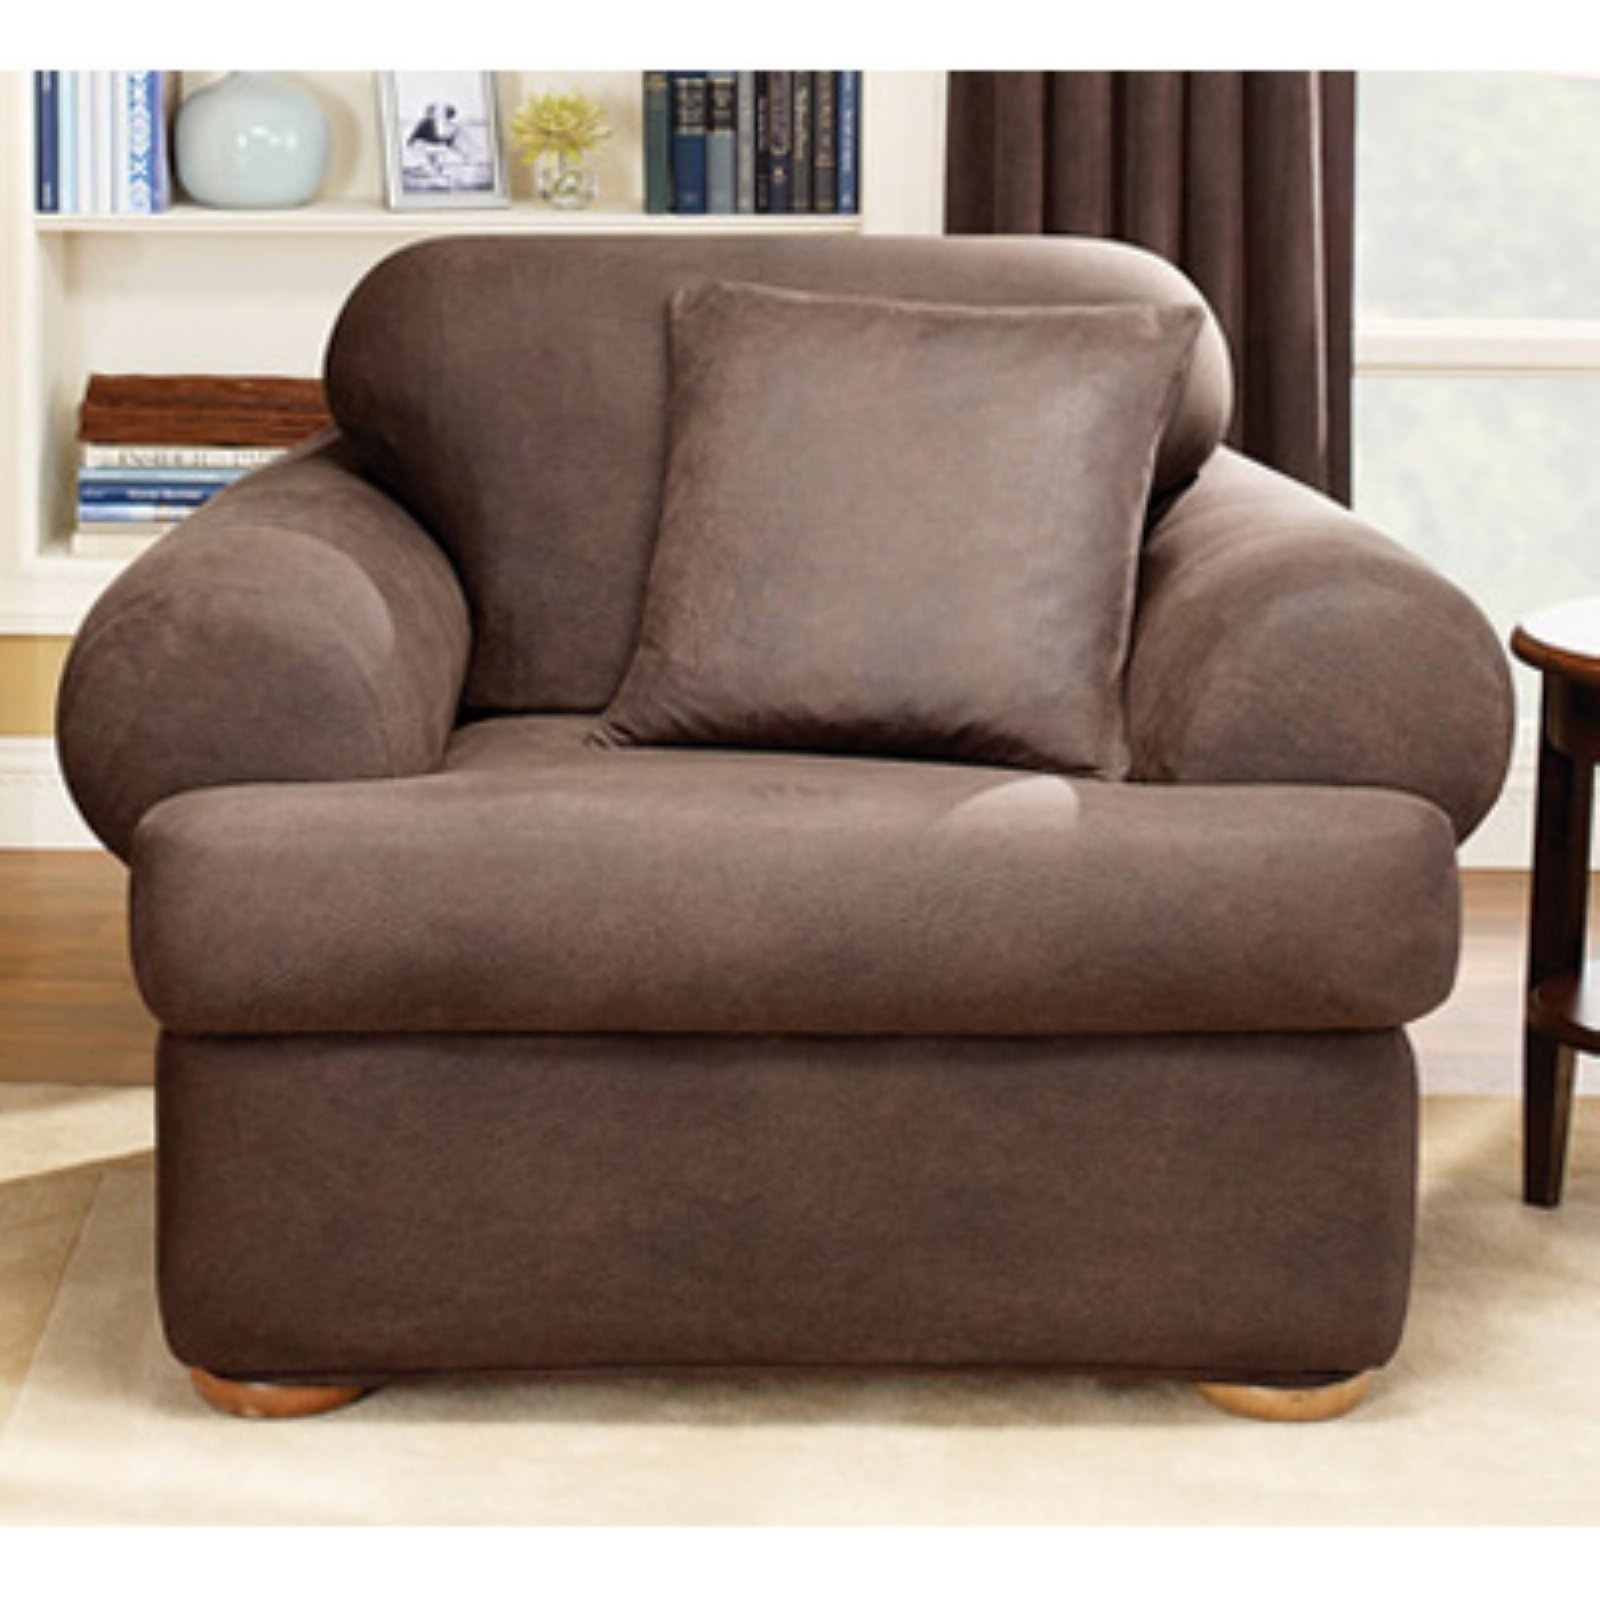 chair slipcover t cushion meditation sure fit stretch leather 2 piece brown walmart com